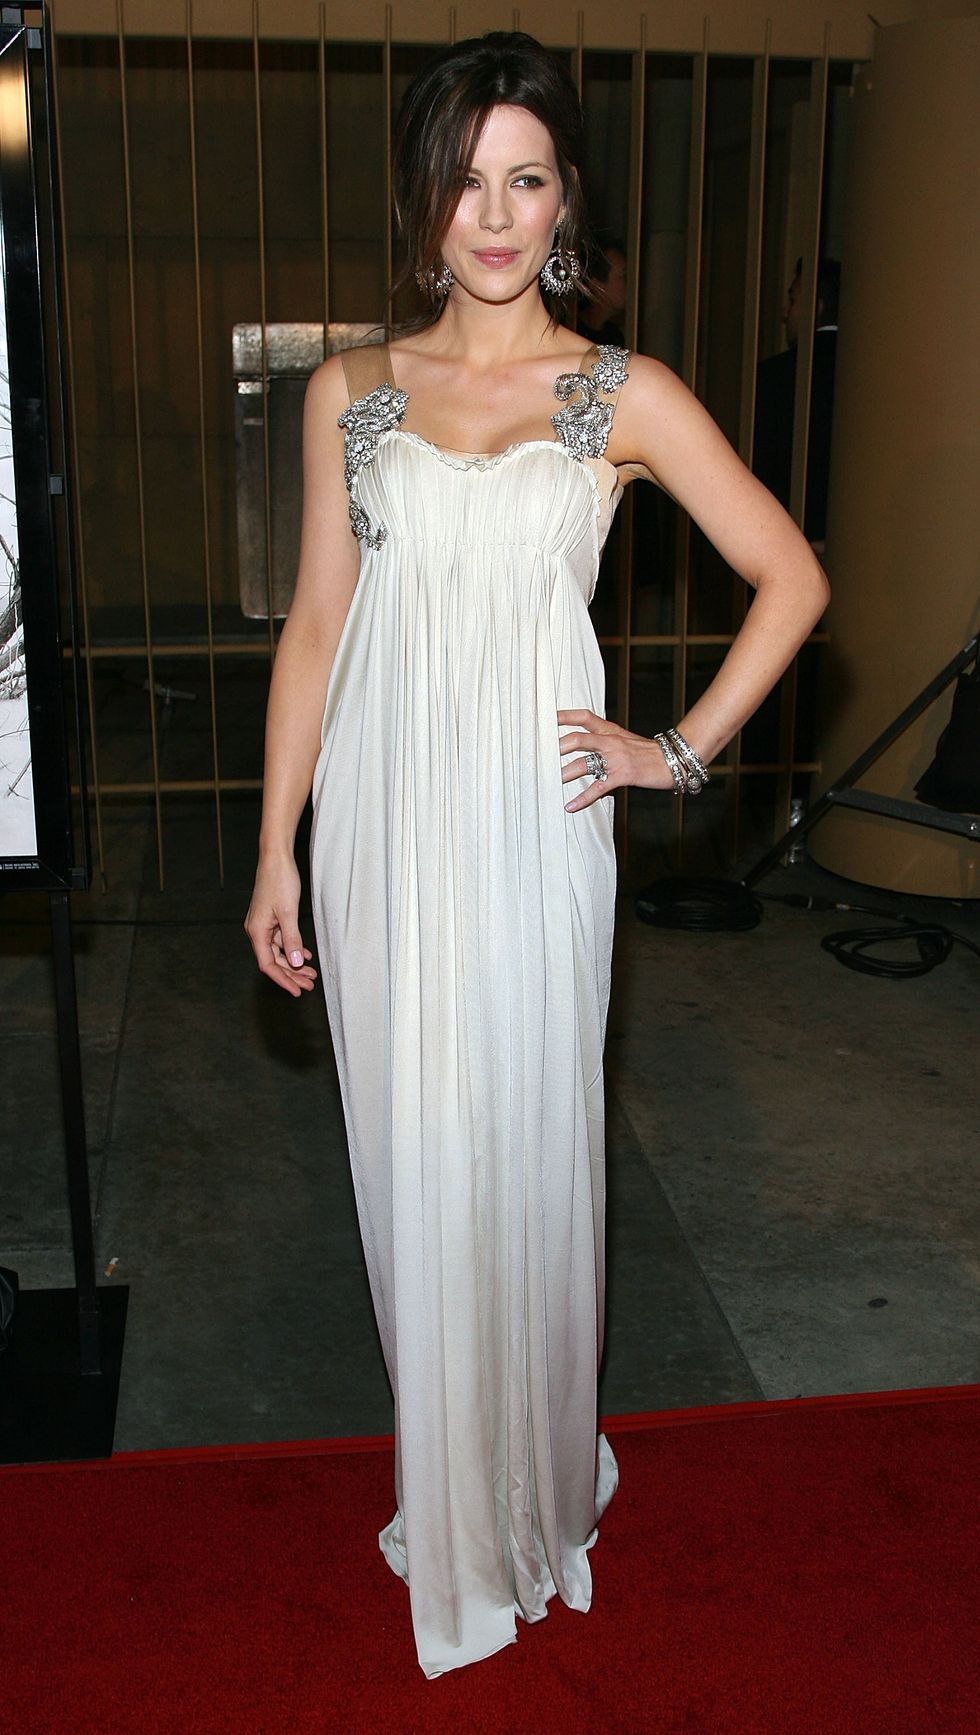 kate-beckinsale-at-snow-angels-premiere-in-los-angeles-01